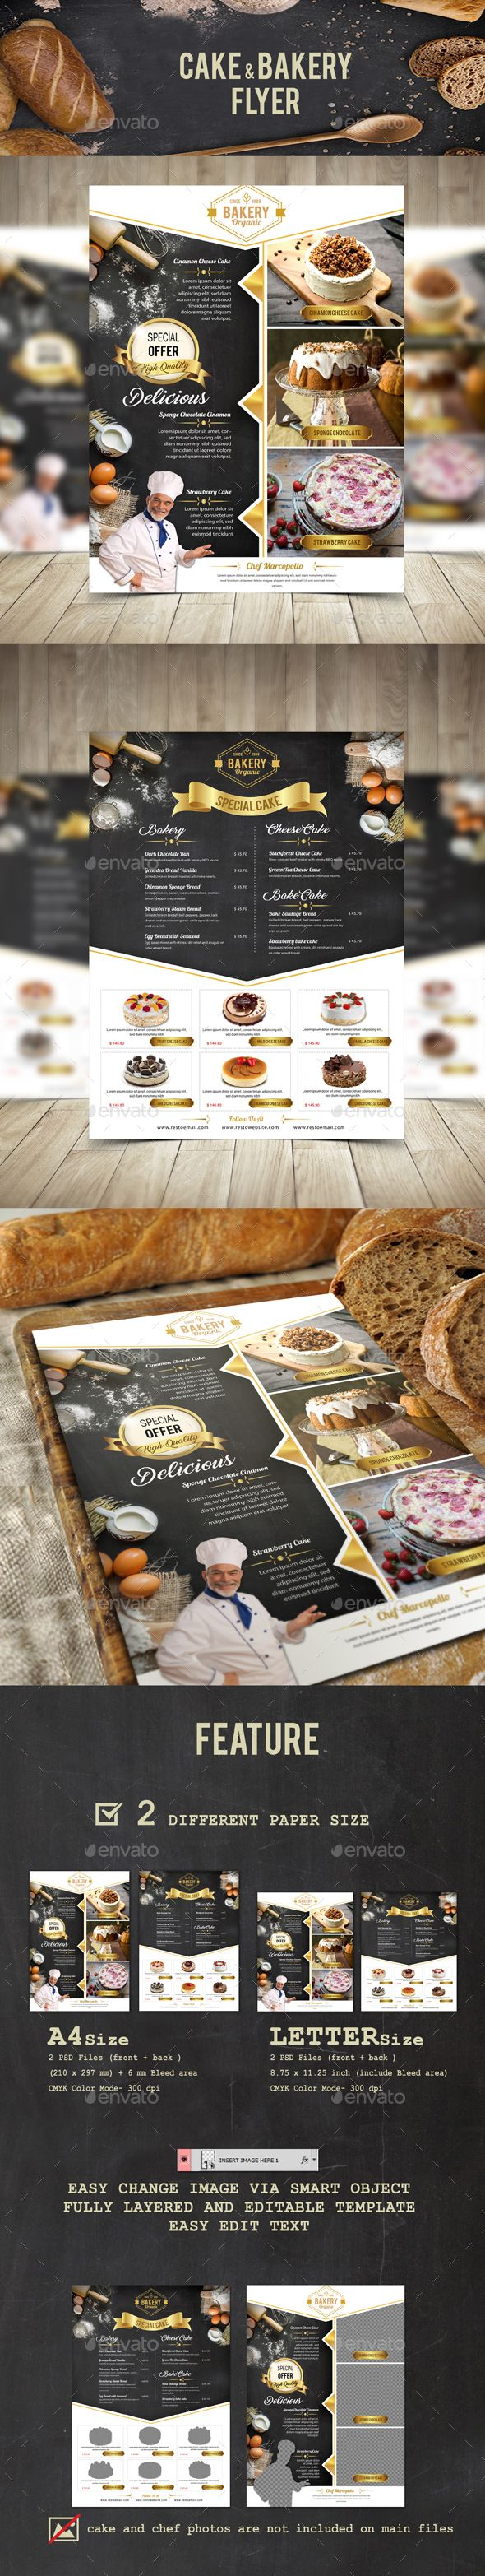 Cake and Bakery Flyer